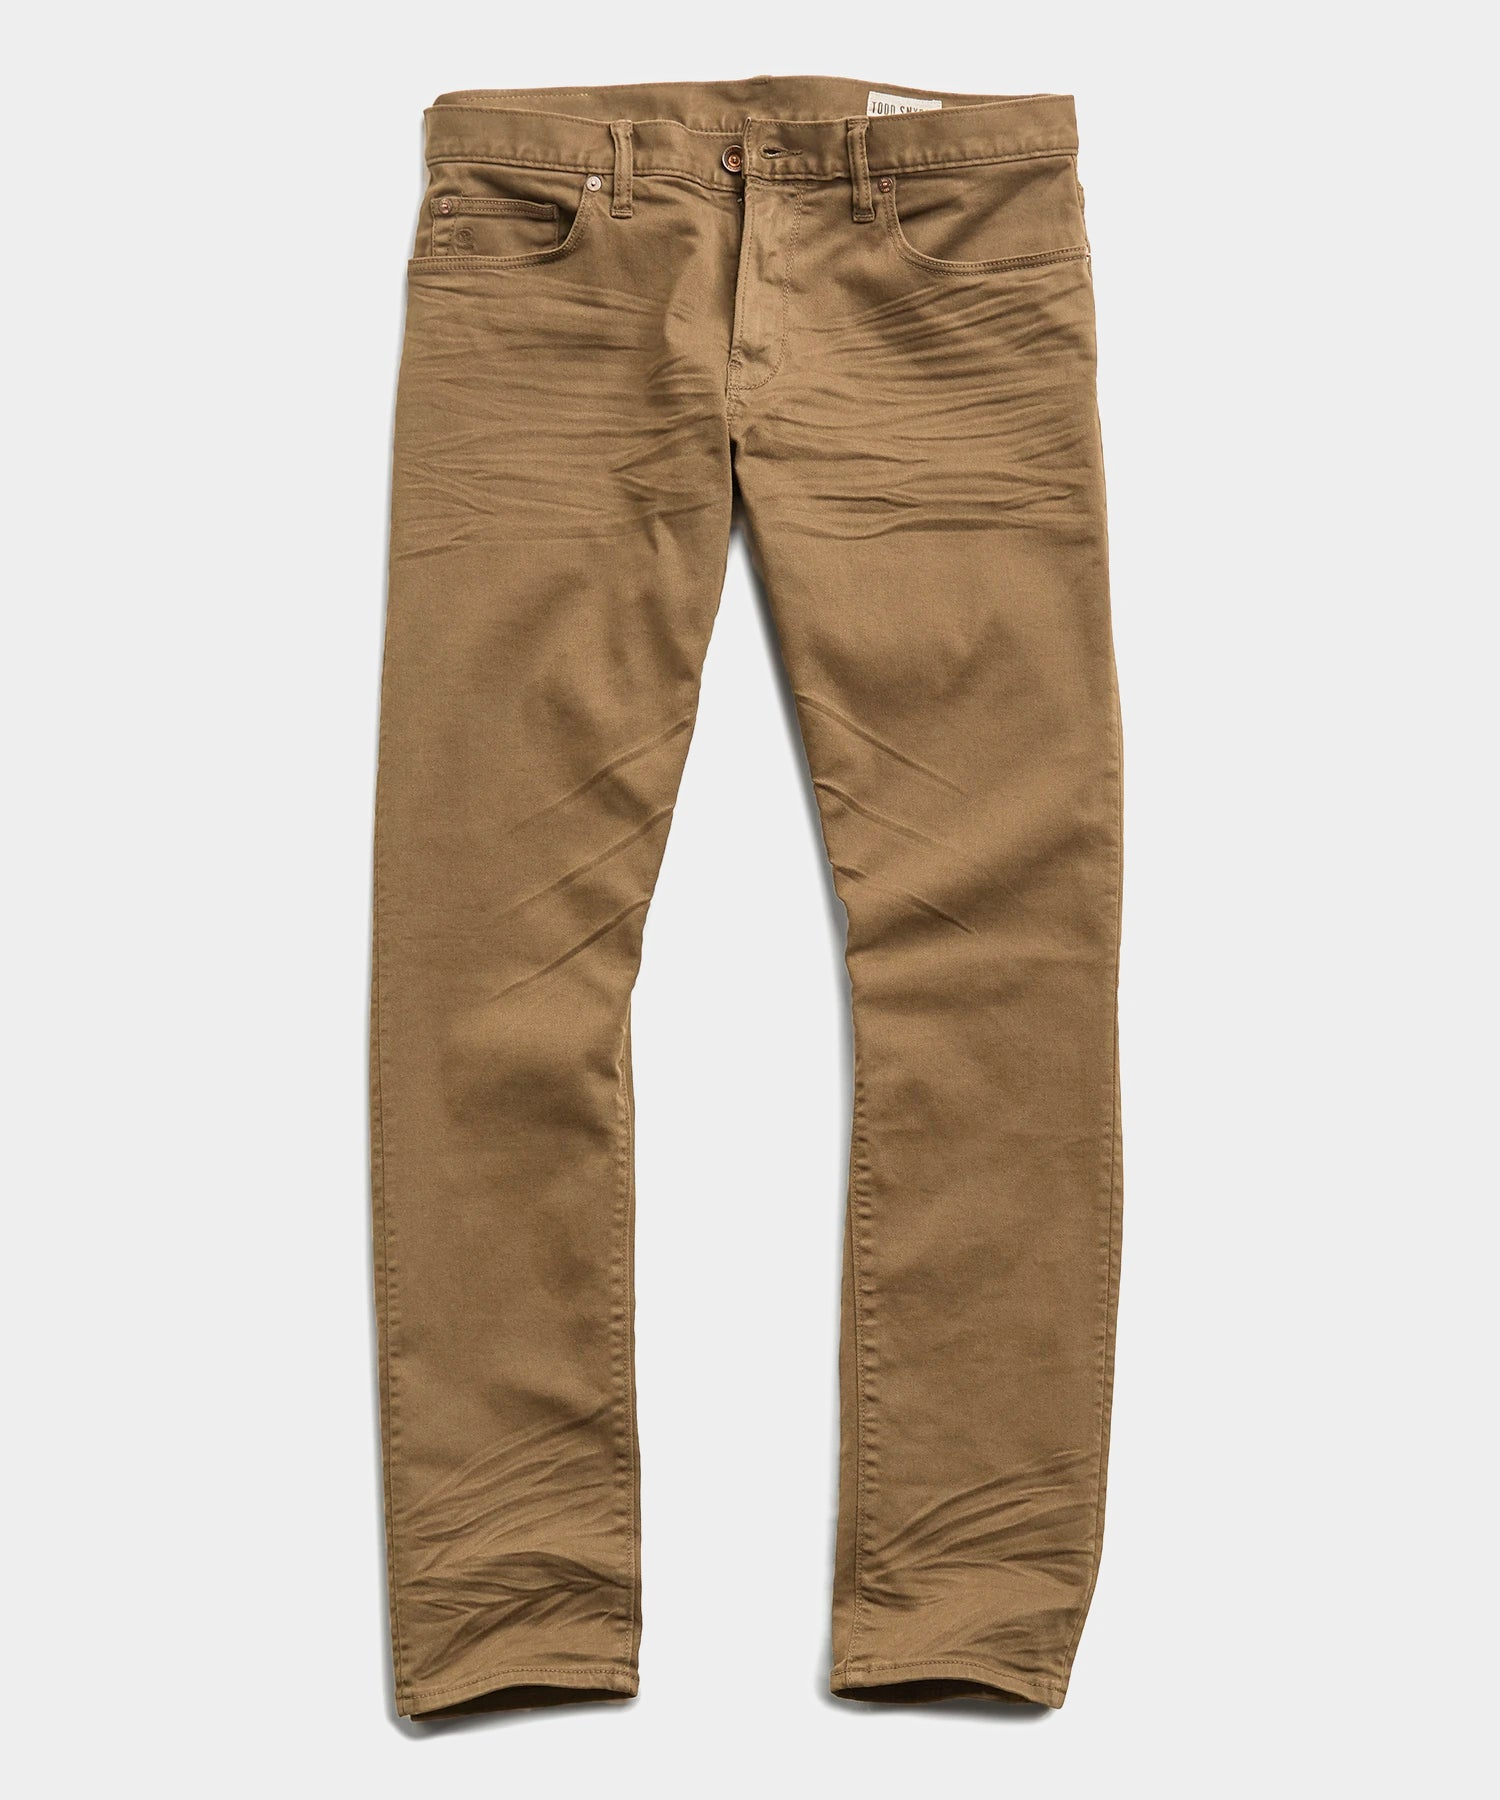 Slim Fit 5-Pocket Garment-Dyed Stretch Twill in Khaki